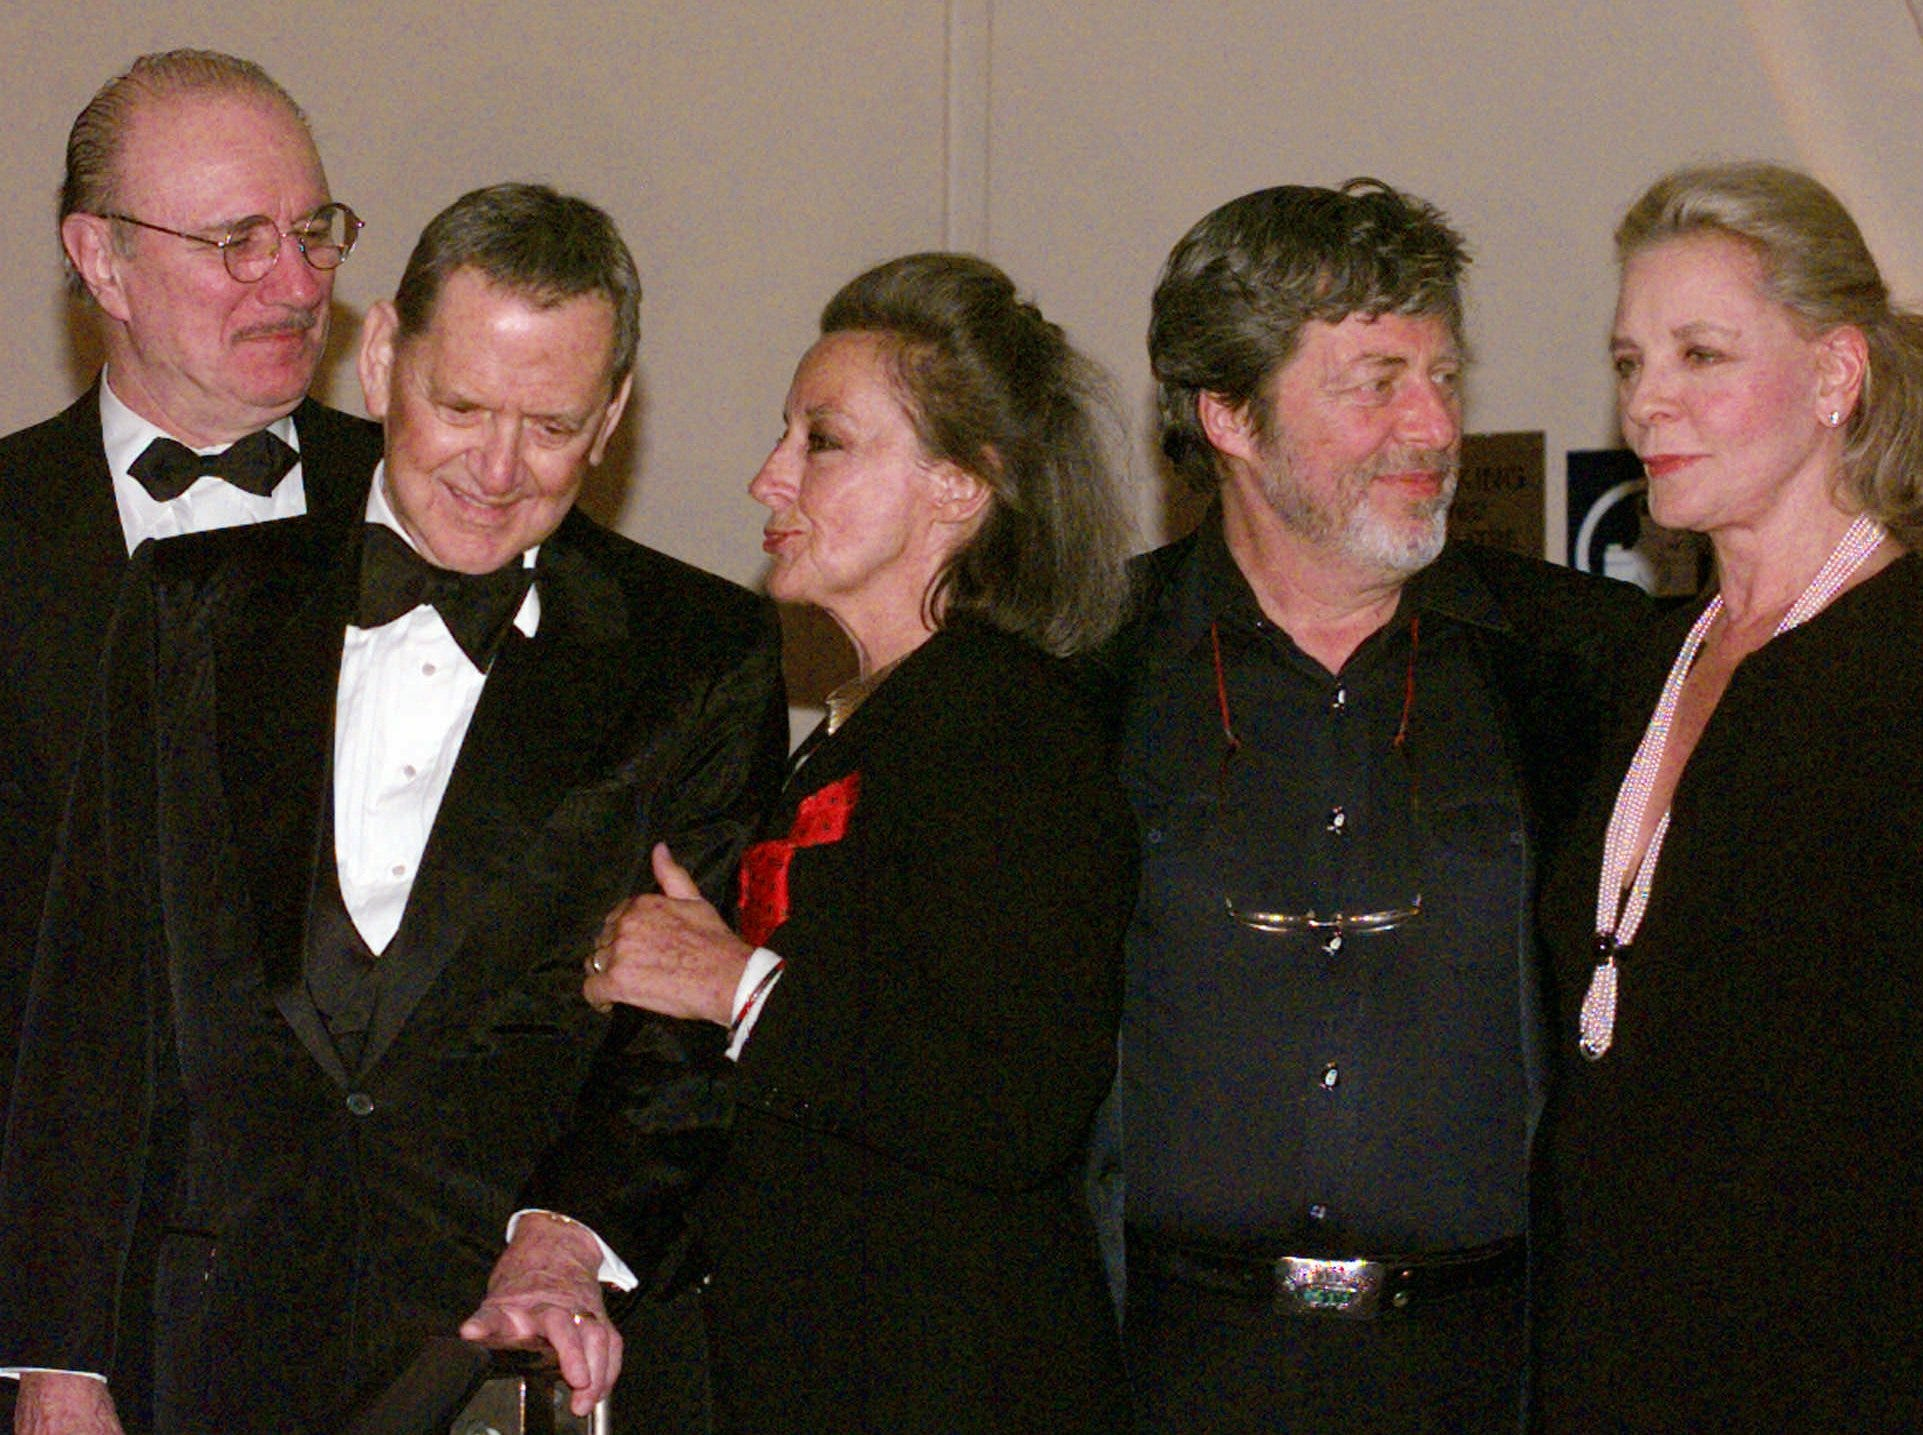 Attending the 27th Annual Theatre Hall of Fame Ceremonies in New York, Monday, Feb. 2, 1998 are, left to right: Philip Bosco, Tony Randall, Zoe Caldwell, Tony Walton and Lauren Bacall. Caldwell and Walton are in the Hall of Fame; Bosco, Randall and Bacall are being inducted Monday evening. (AP Photo/Mark Lennihan)